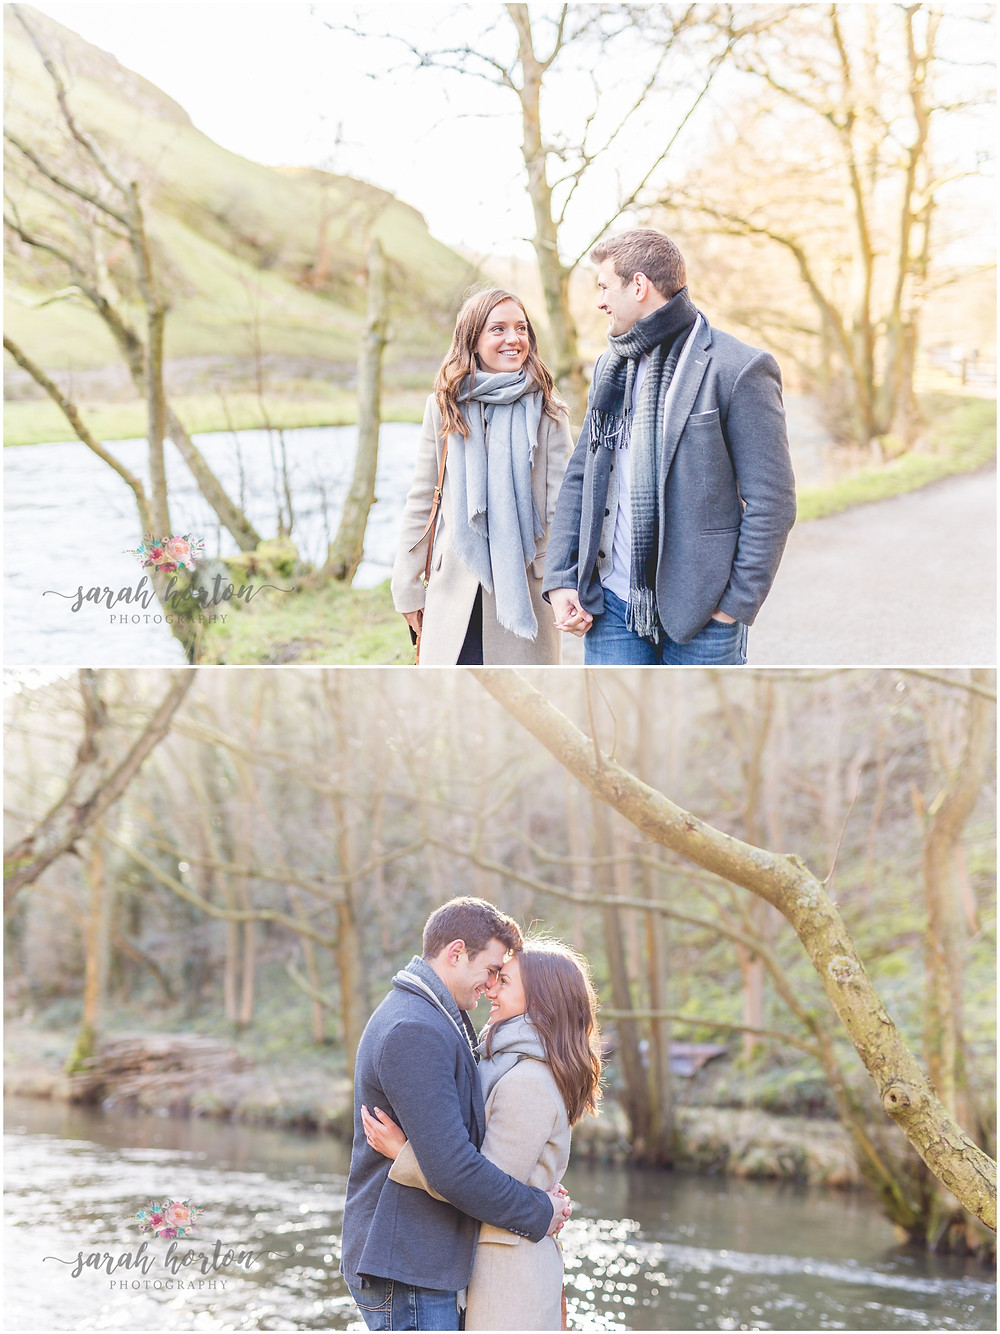 Cheshire Pre-Wedding Photography in the Peak District - Dovedale, Ashbourne